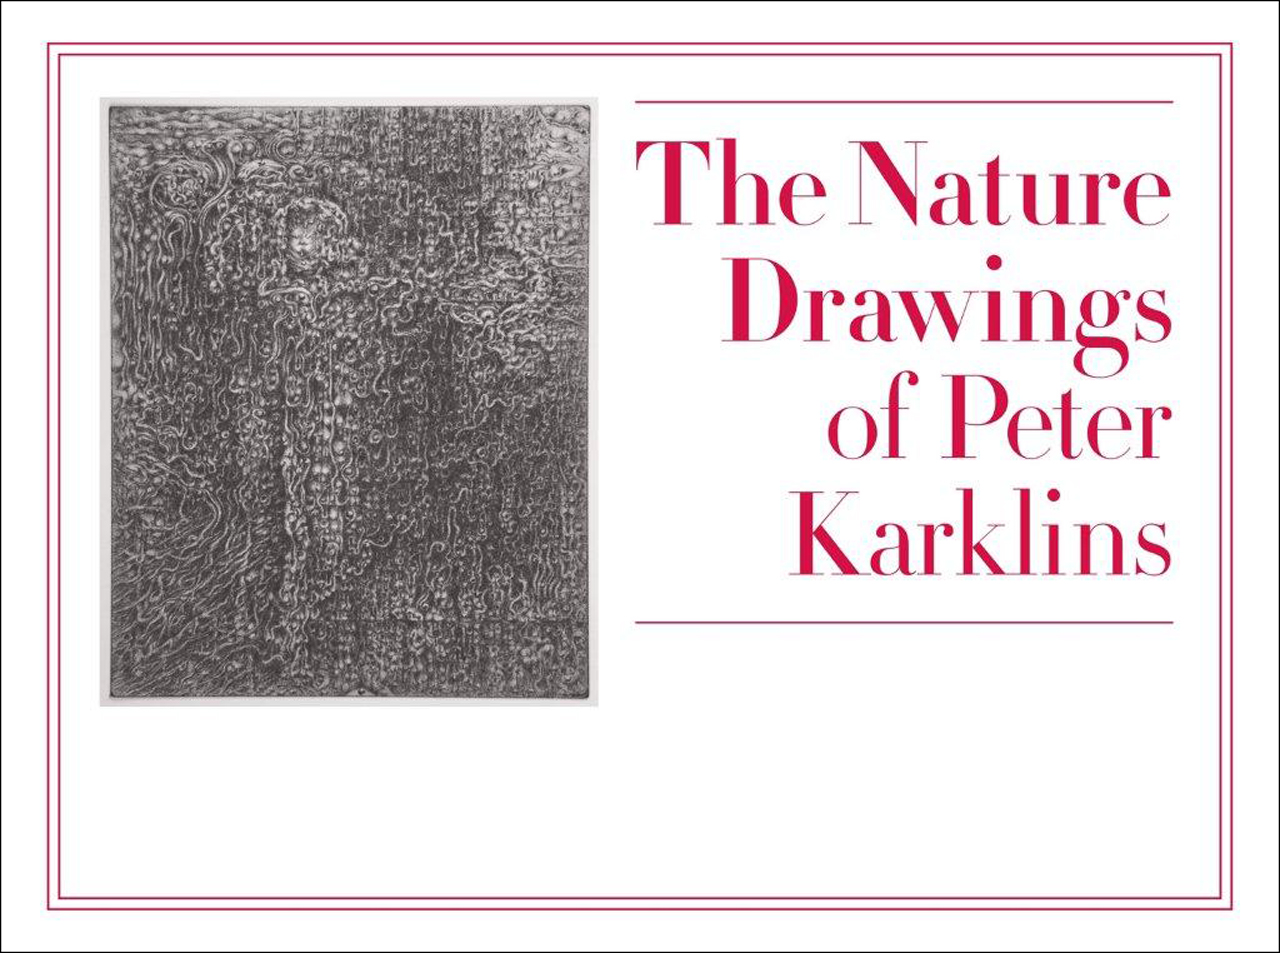 The Nature Drawings of Peter Karklins